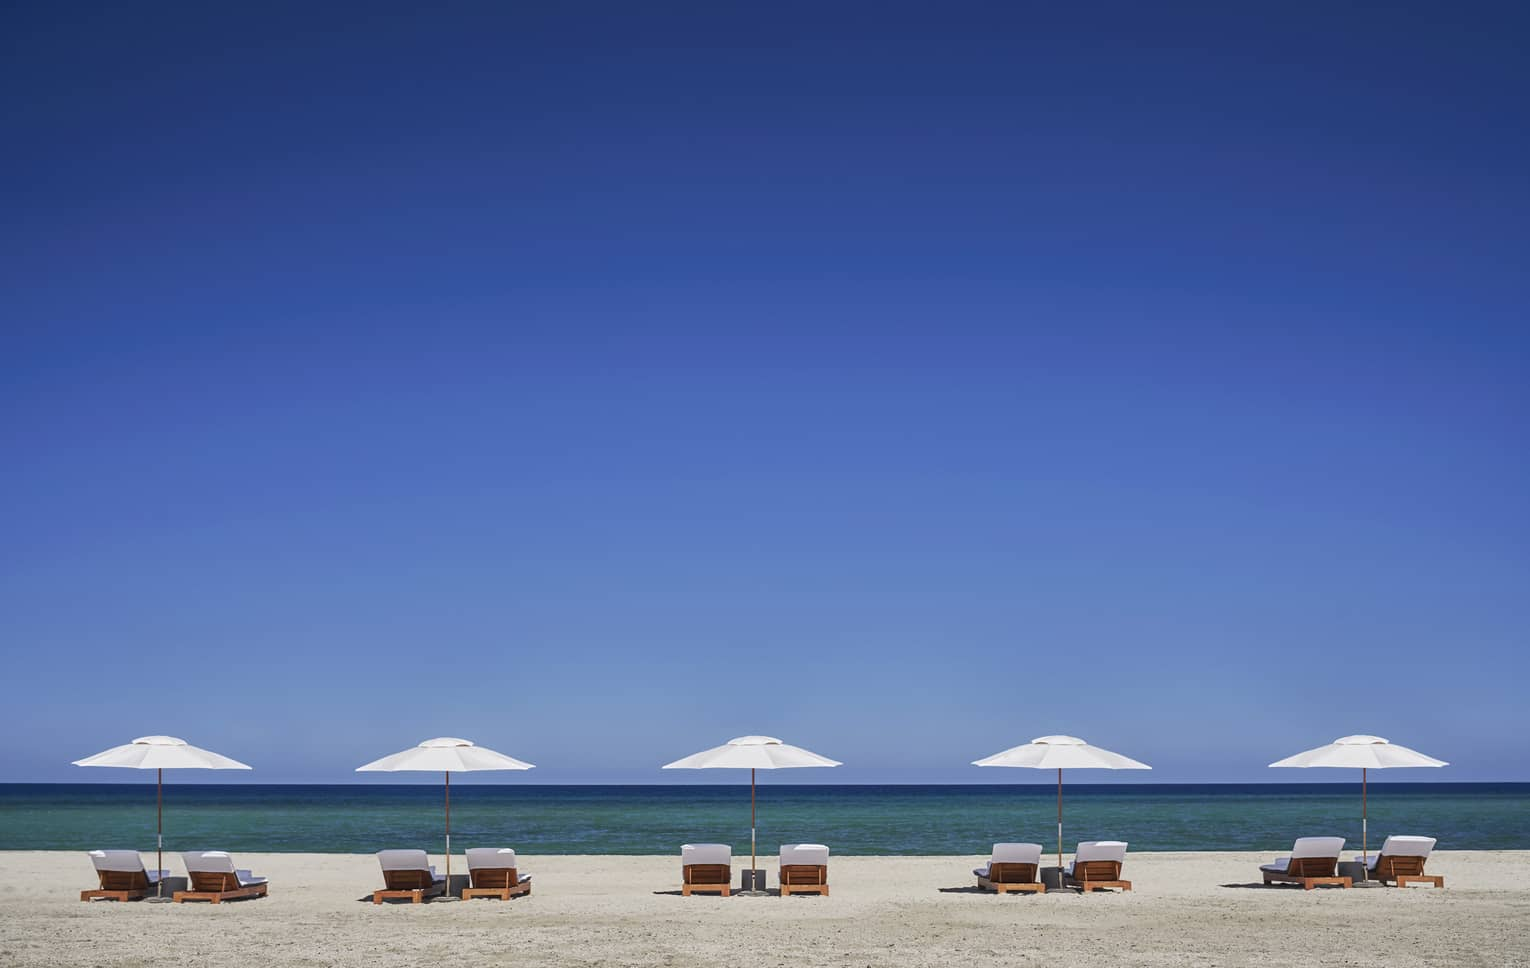 Row of white patio umbrellas, chairs on beach against striking blue sky